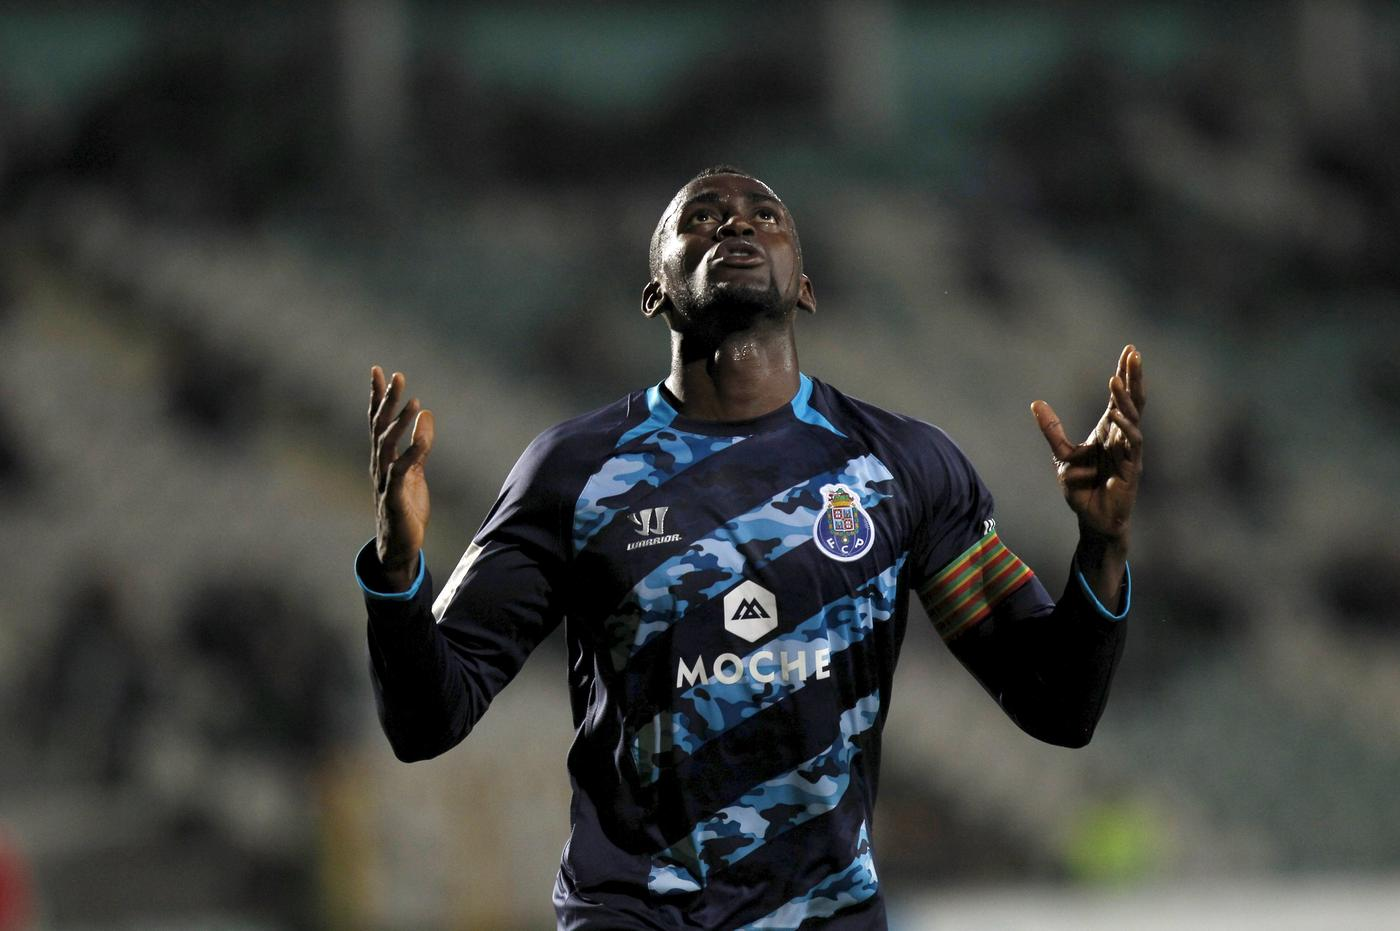 Arsenal 'cleared to make transfer bid for Jackson Martinez as Porto start search for replacements'